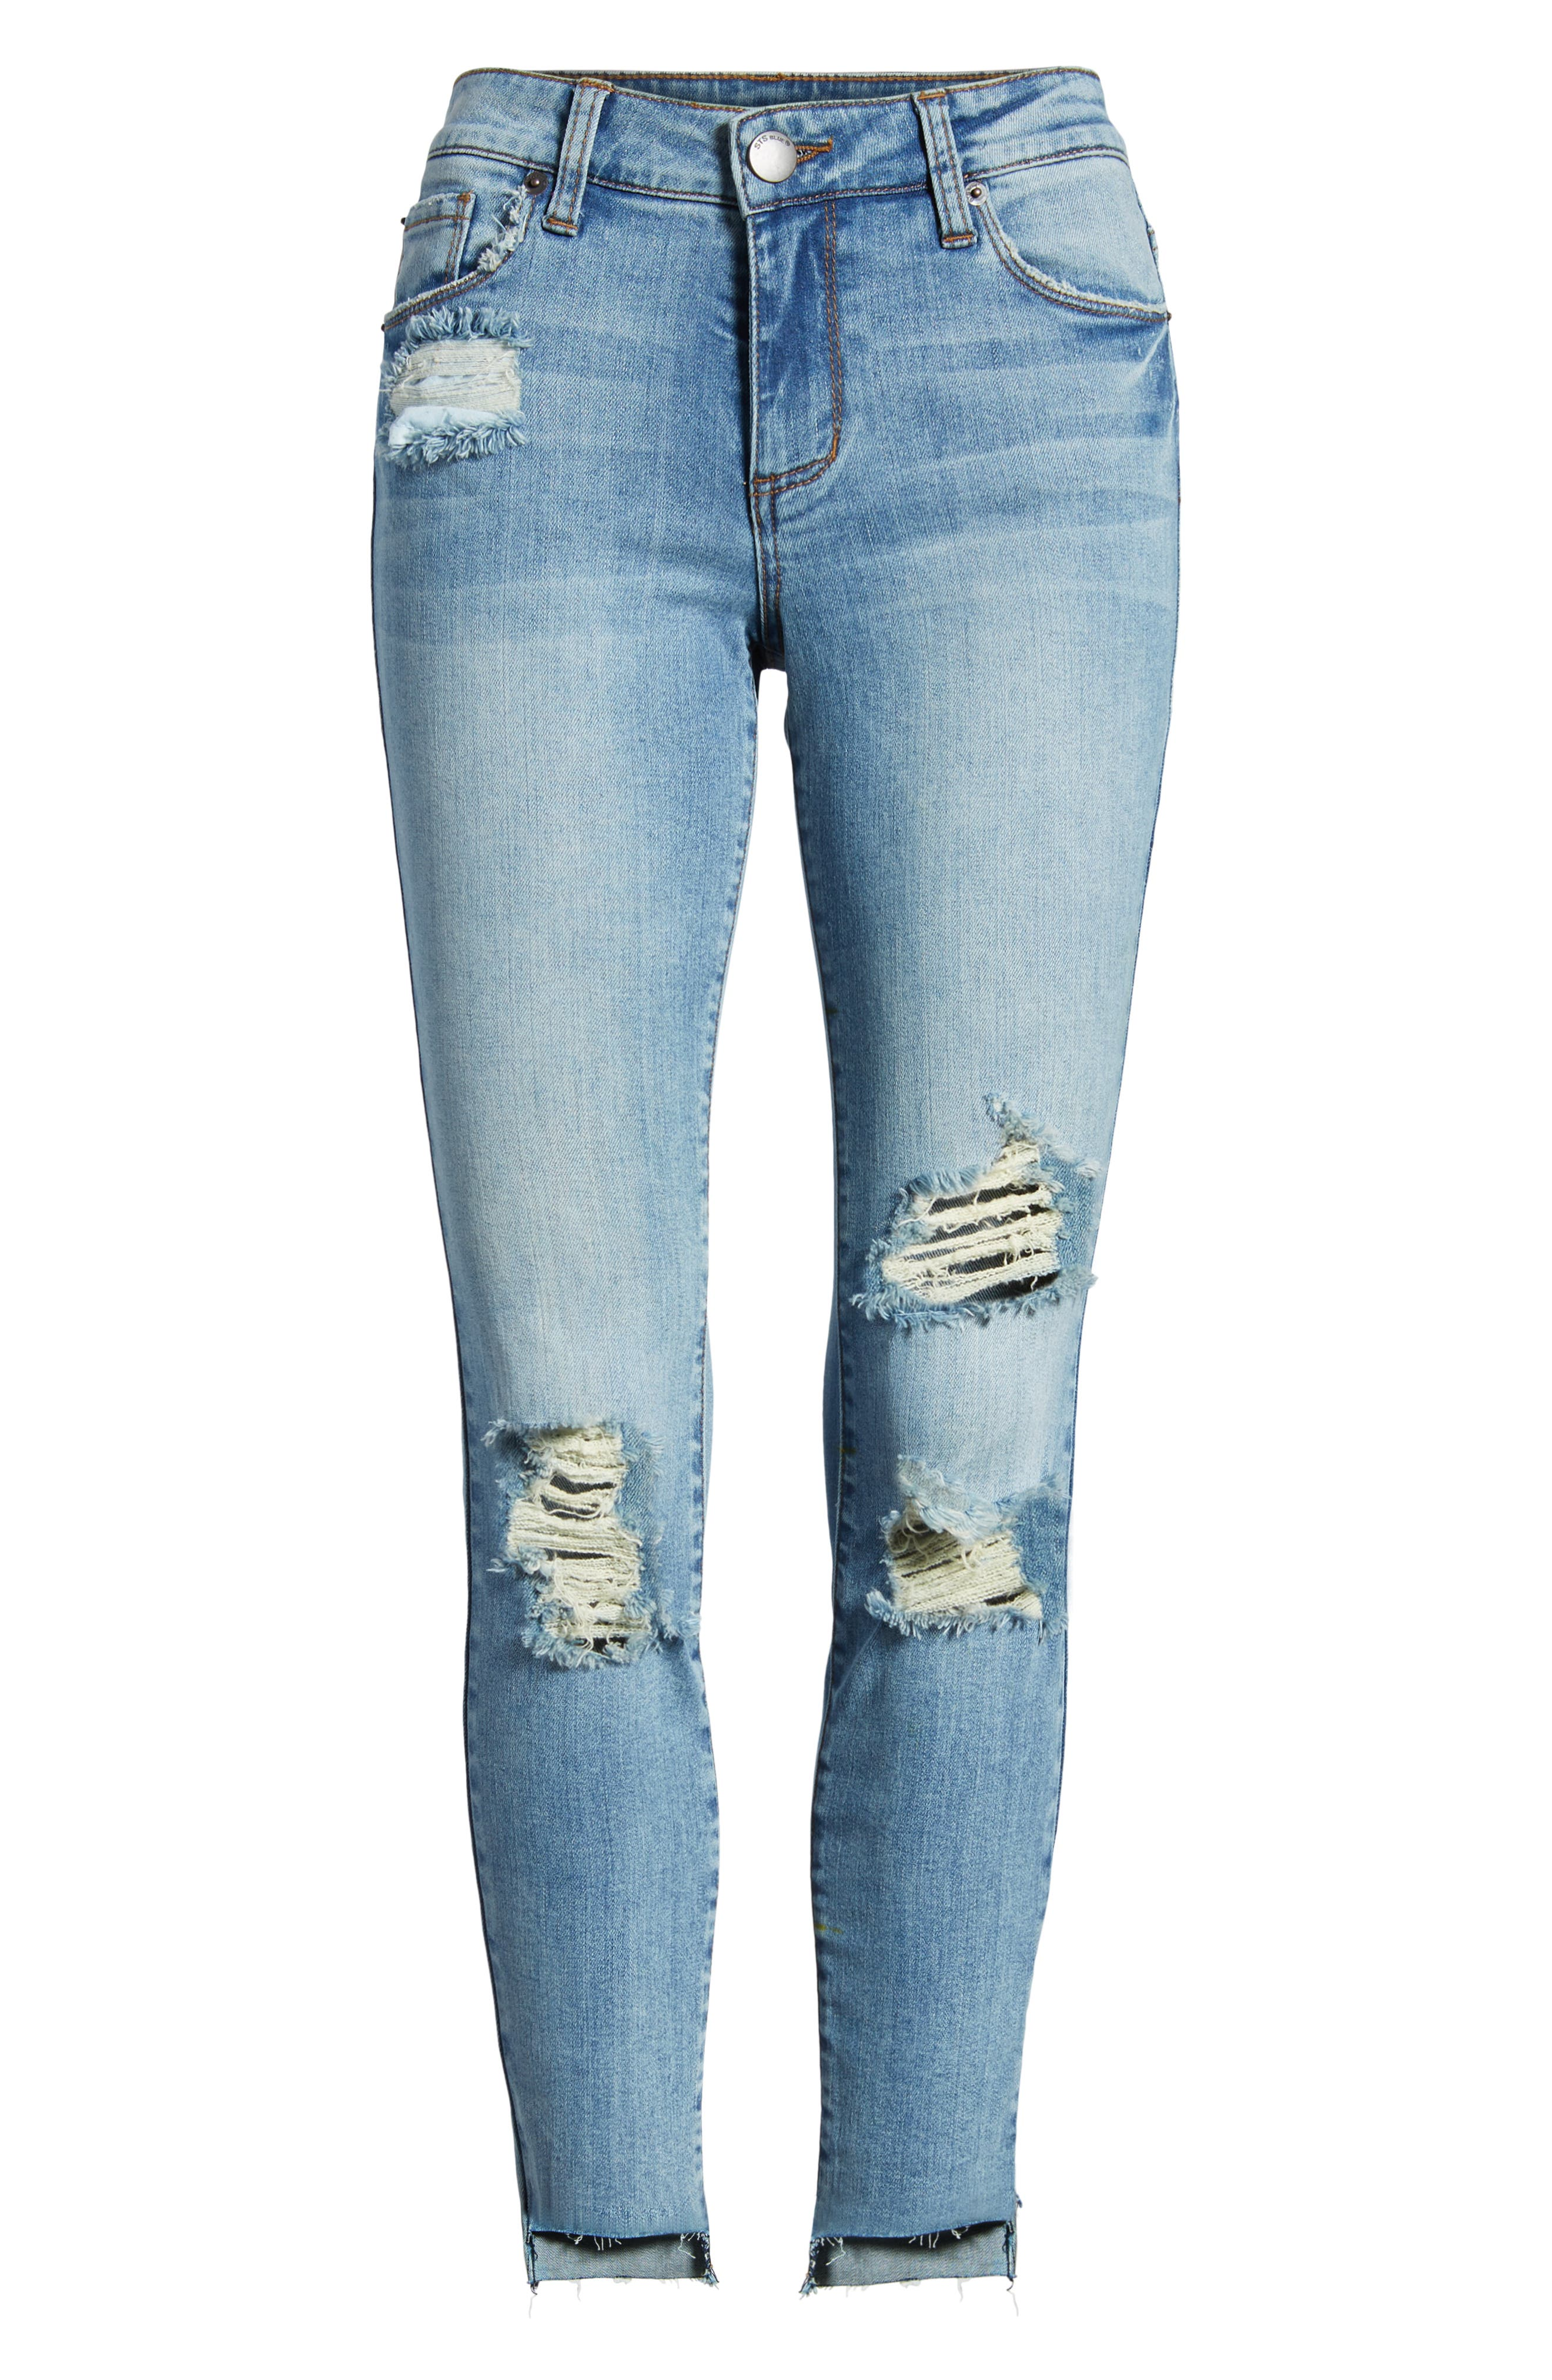 STS Blue Emma Ripped Ankle Skinny Jeans,                             Alternate thumbnail 7, color,                             Nortan W/ Lt Base